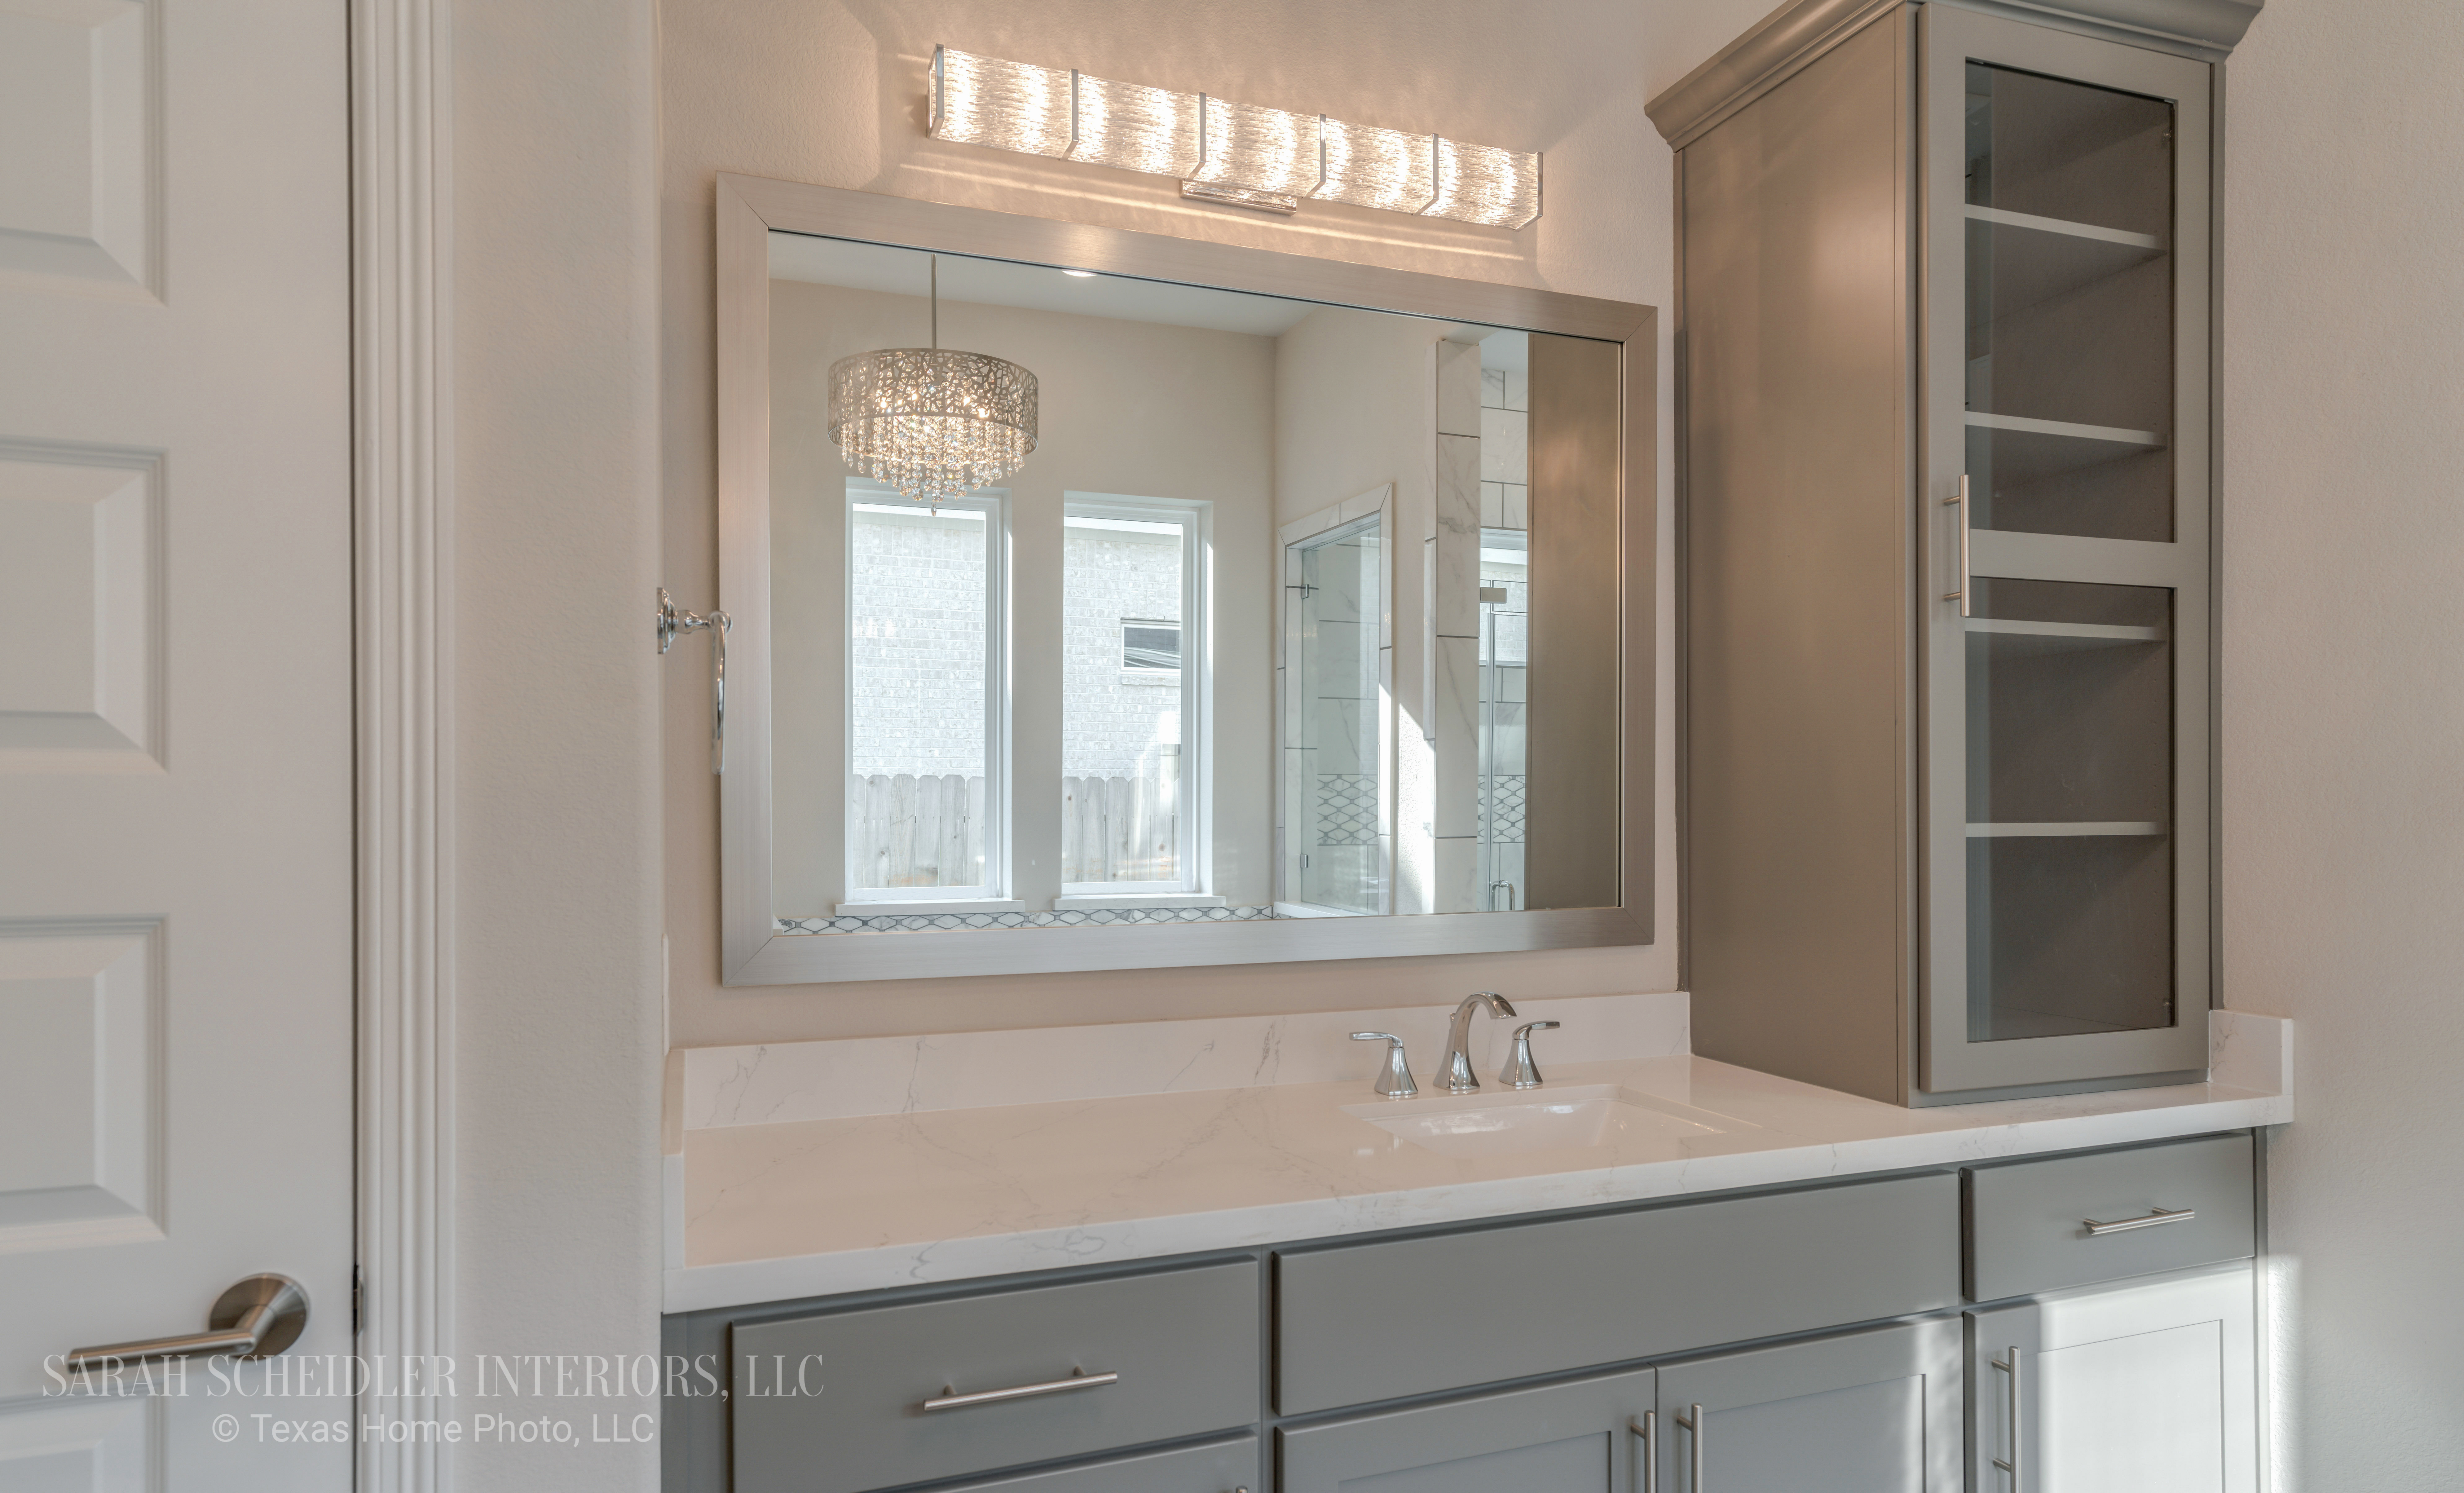 White and Grey Master Bathroom Vanity (Hers) with Silestone Quartz Countertops, Chrome Finishes, and Crystal Lighting